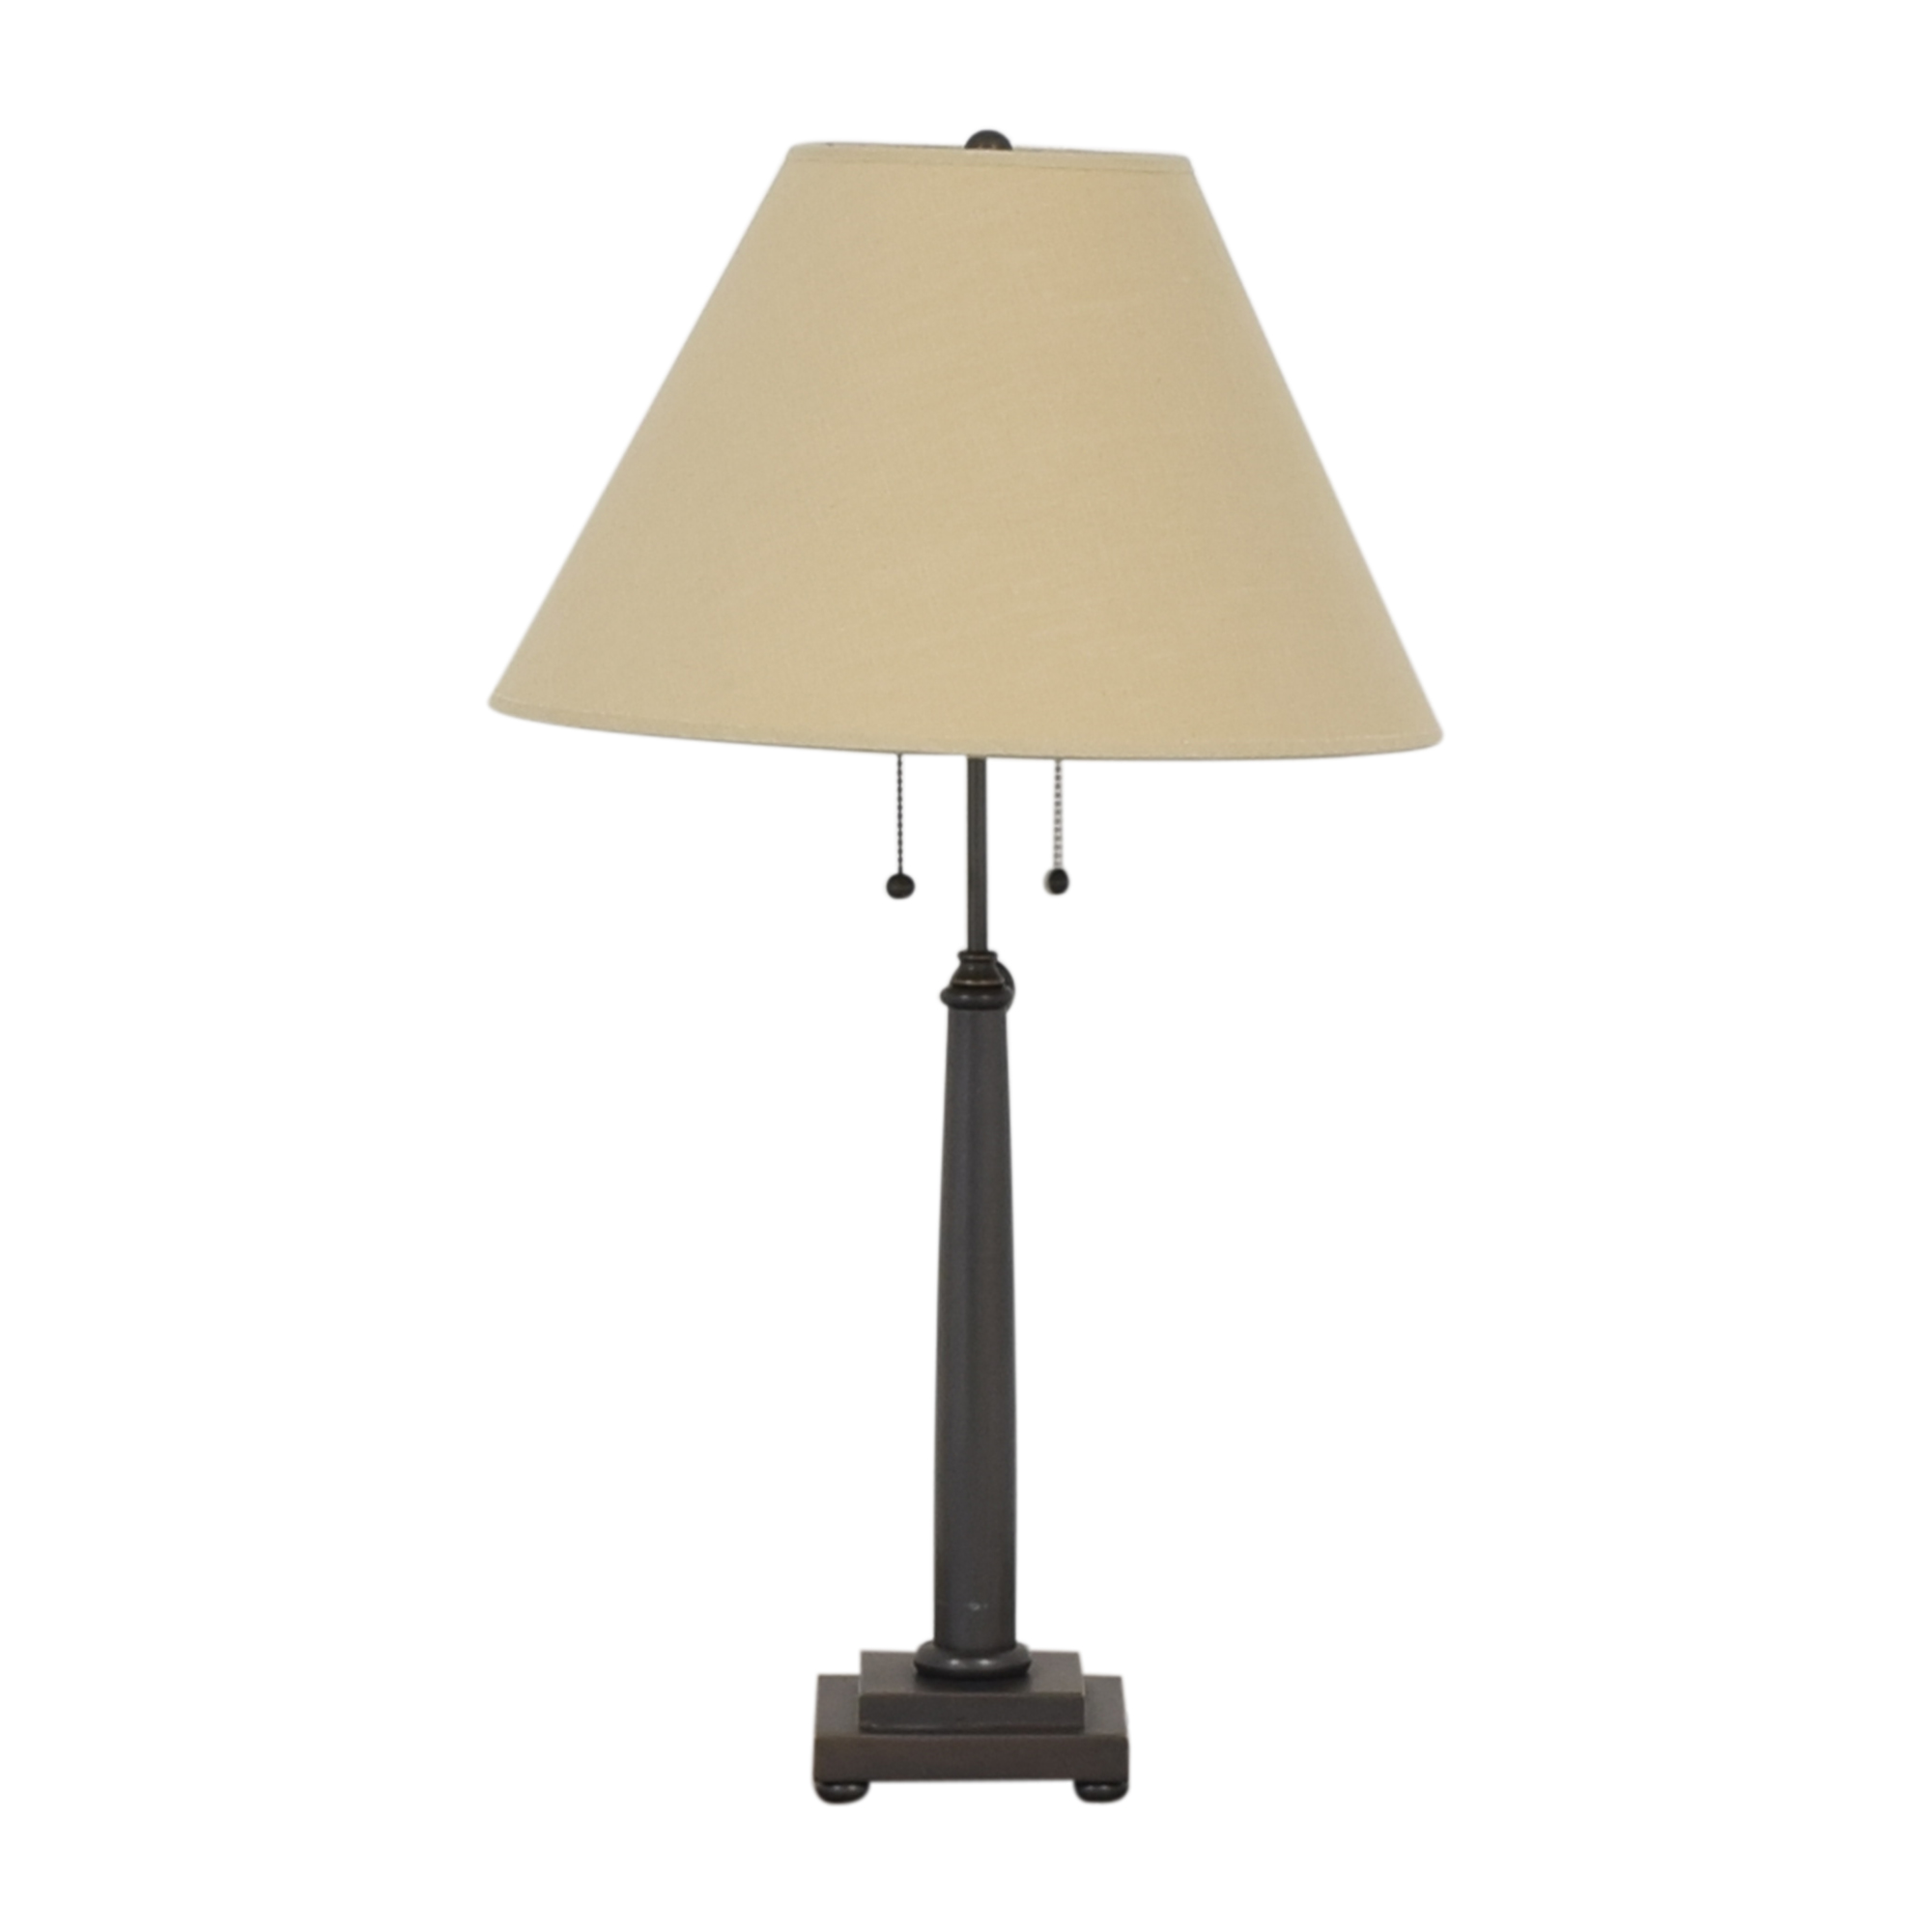 Pottery Barn Pottery Barn Adjustable Table Lamp ct